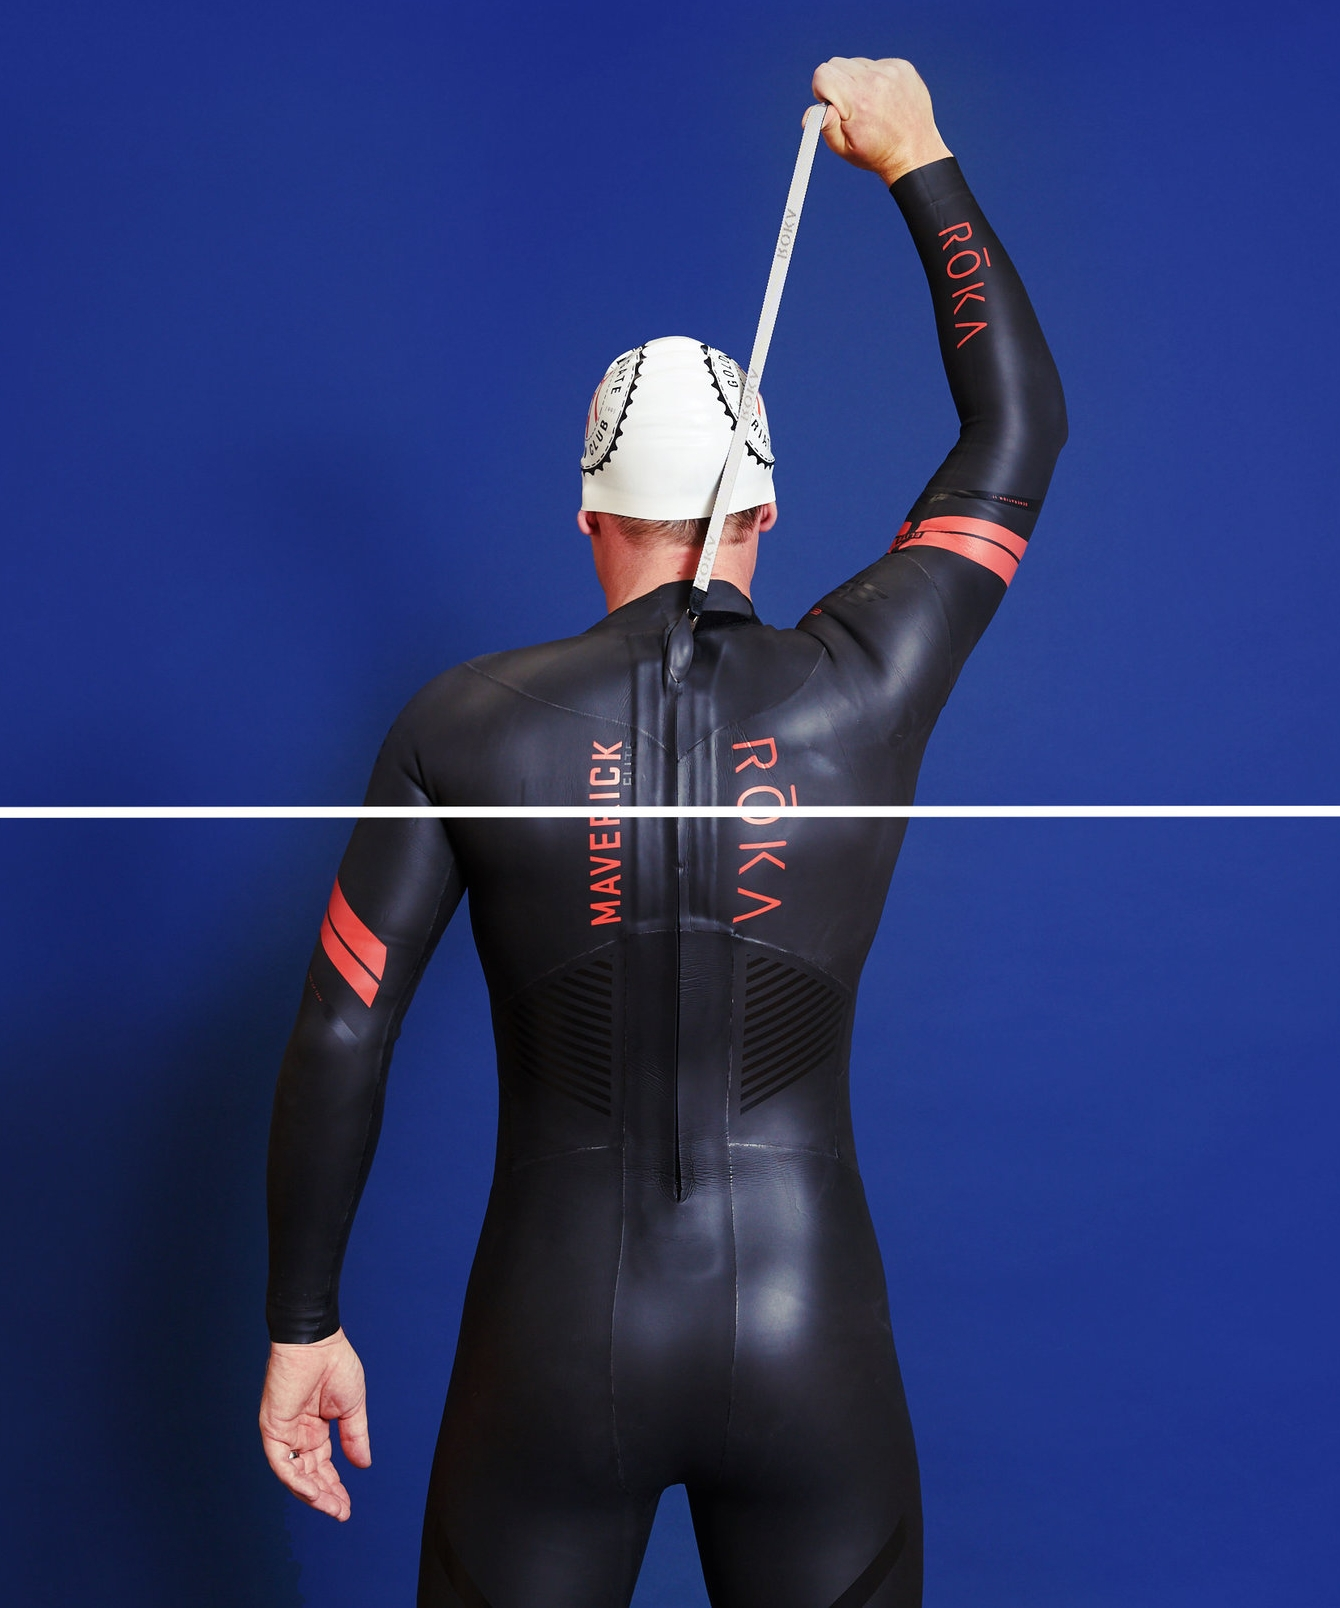 Improve triathlon time physical therapy